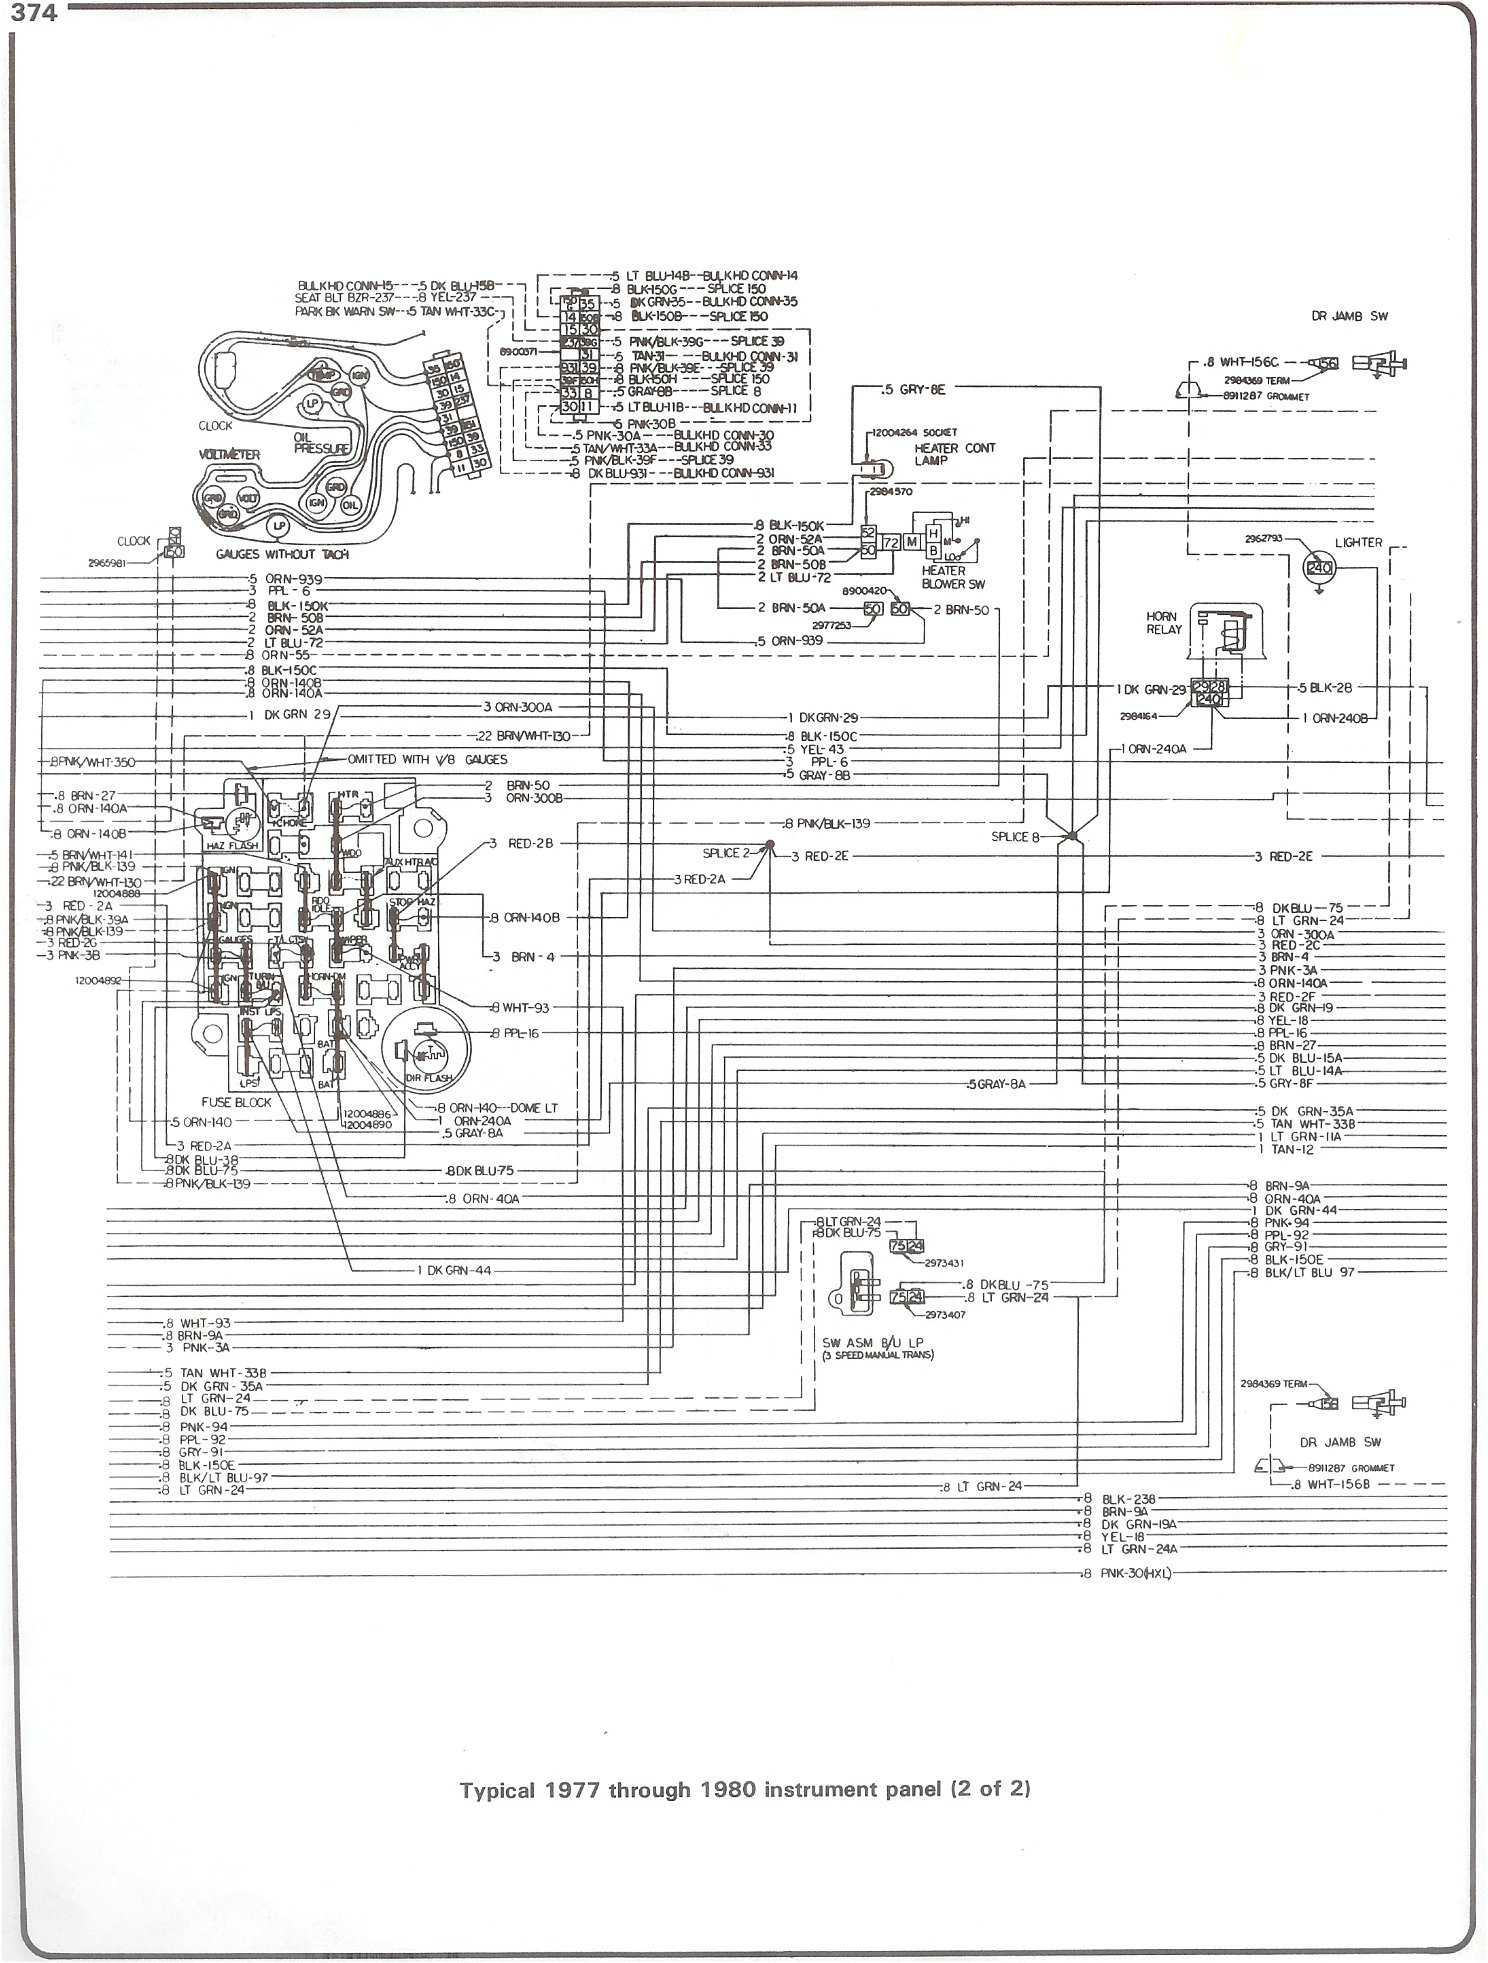 james titus (jtitus483) on pinterest LED Circuit Diagrams